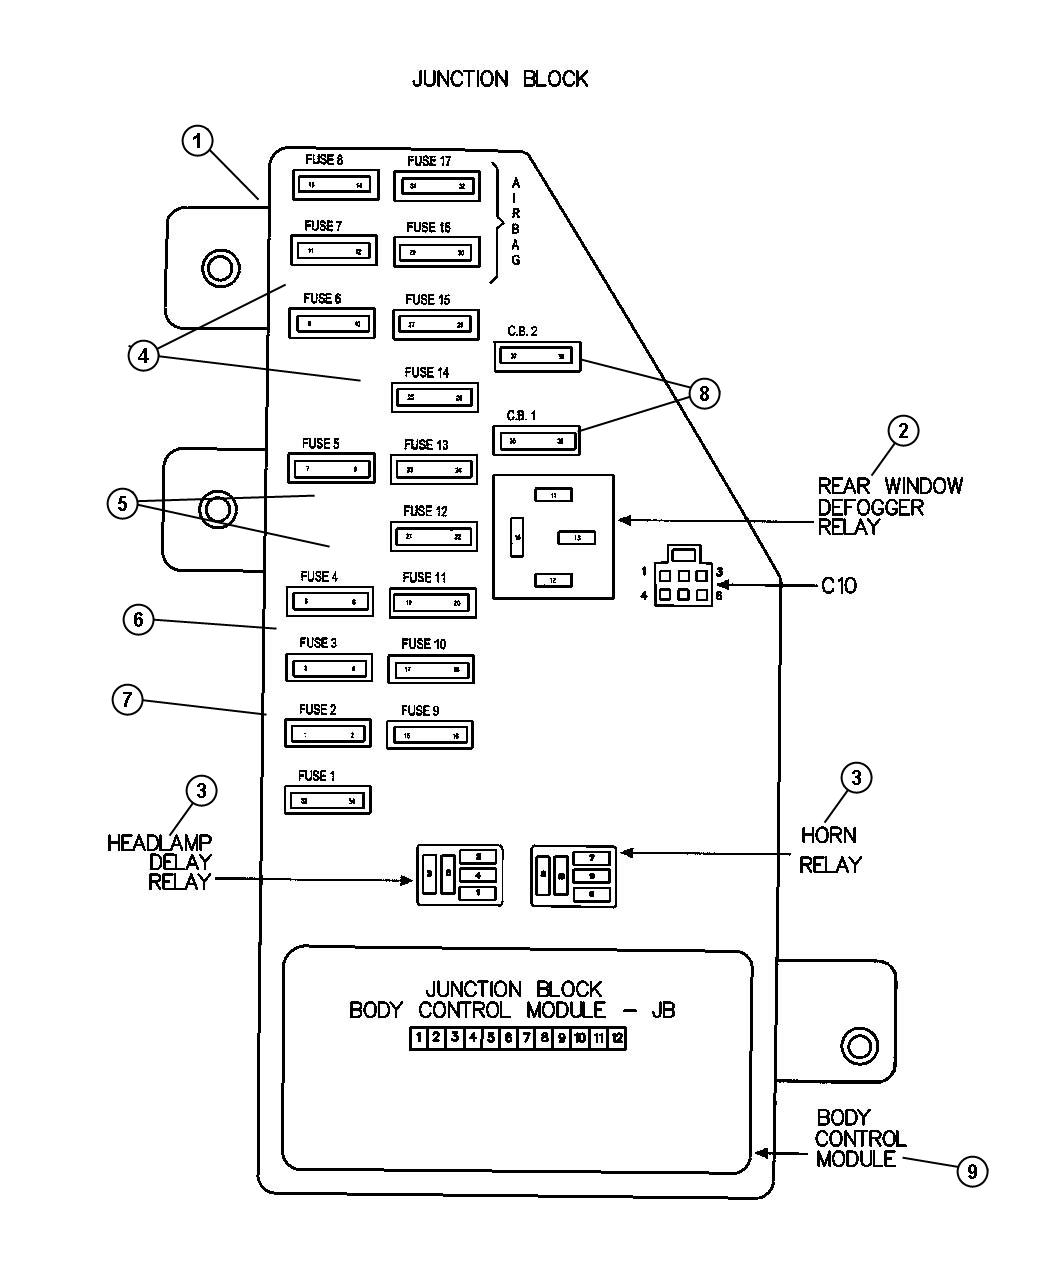 2006 chrysler sebring fuse box diagram block of 8086 microprocessor with explanation window free engine image